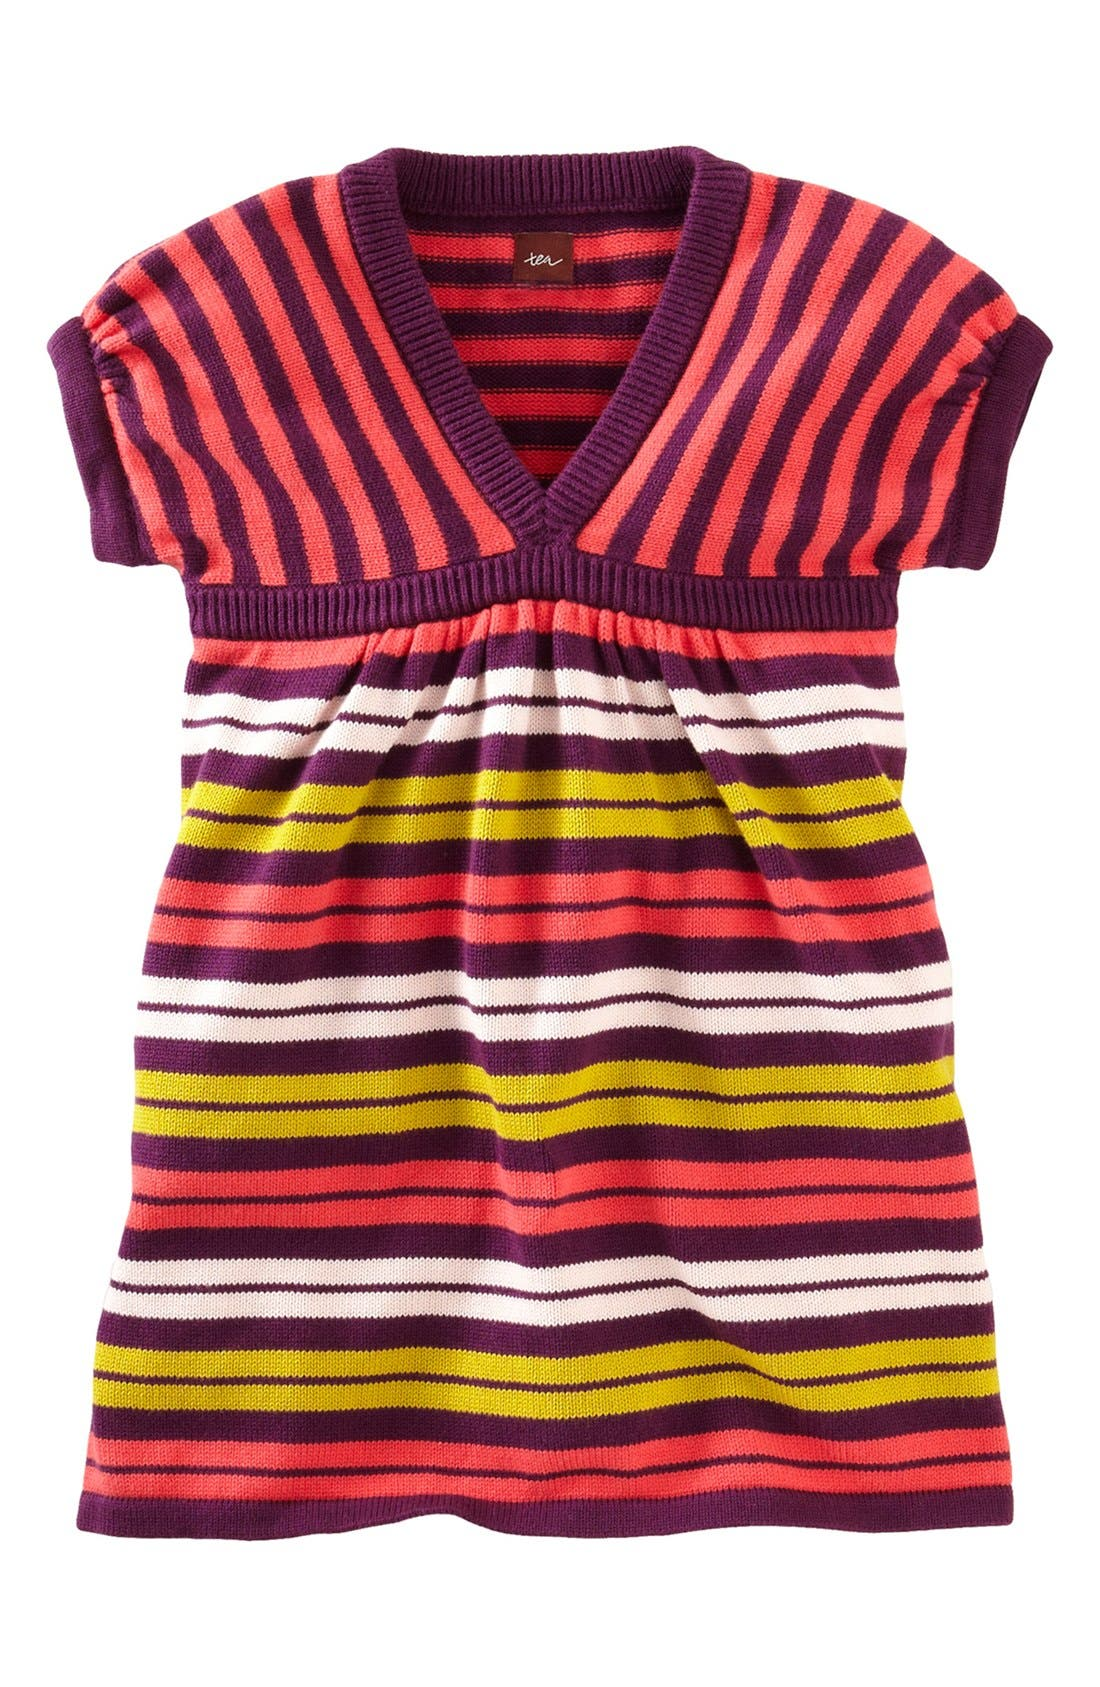 Alternate Image 1 Selected - Tea Collection 'Art Village' Sweater Dress (Little Girls & Big Girls)